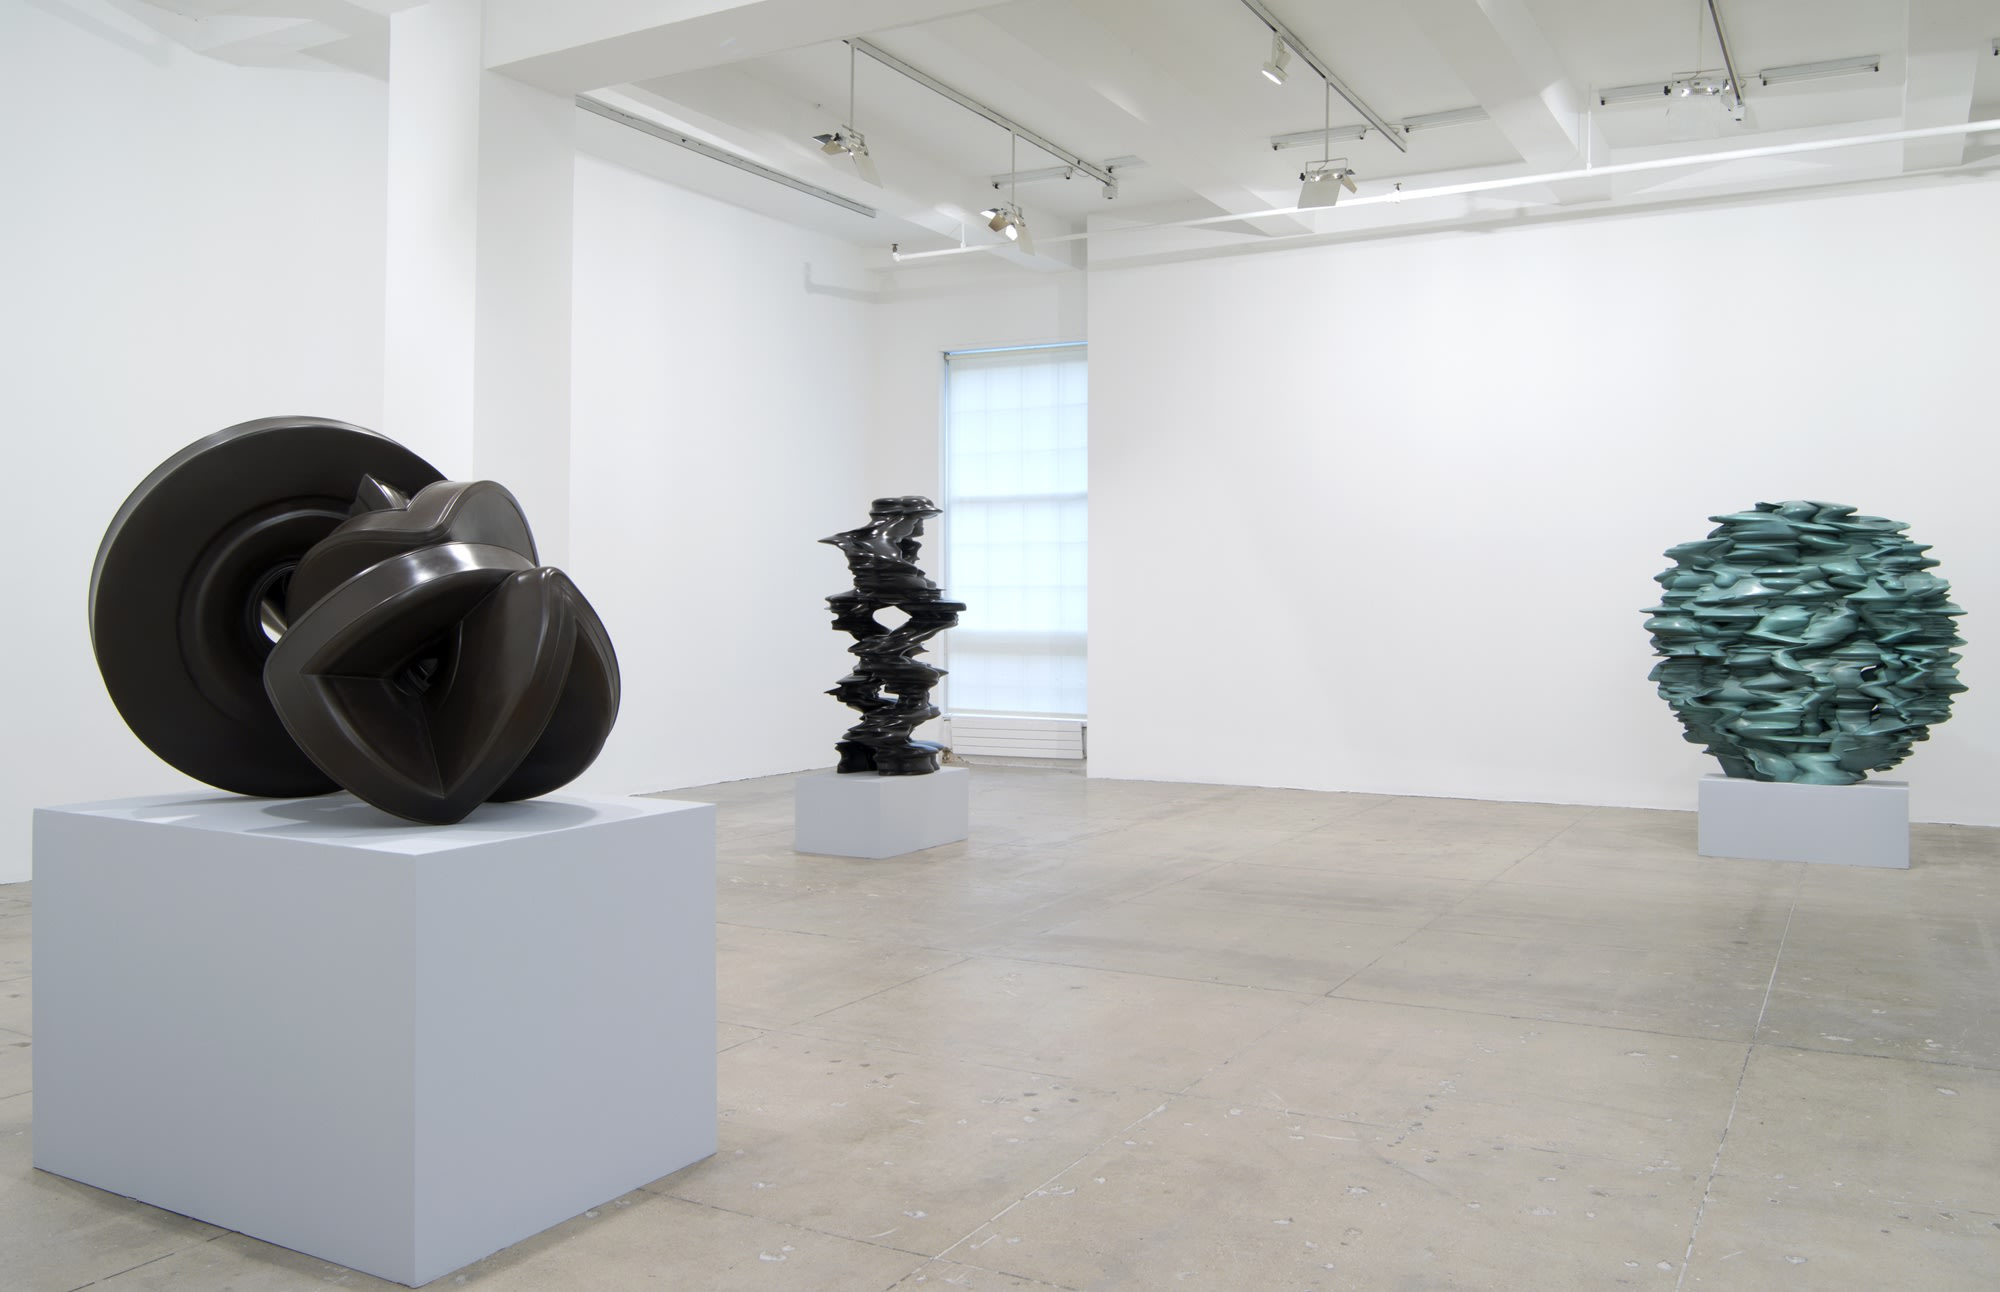 Three abstract sculptures sit on pedestals in a large white room. The one on the right is spherical and light blue-green; the other two are dark grey.